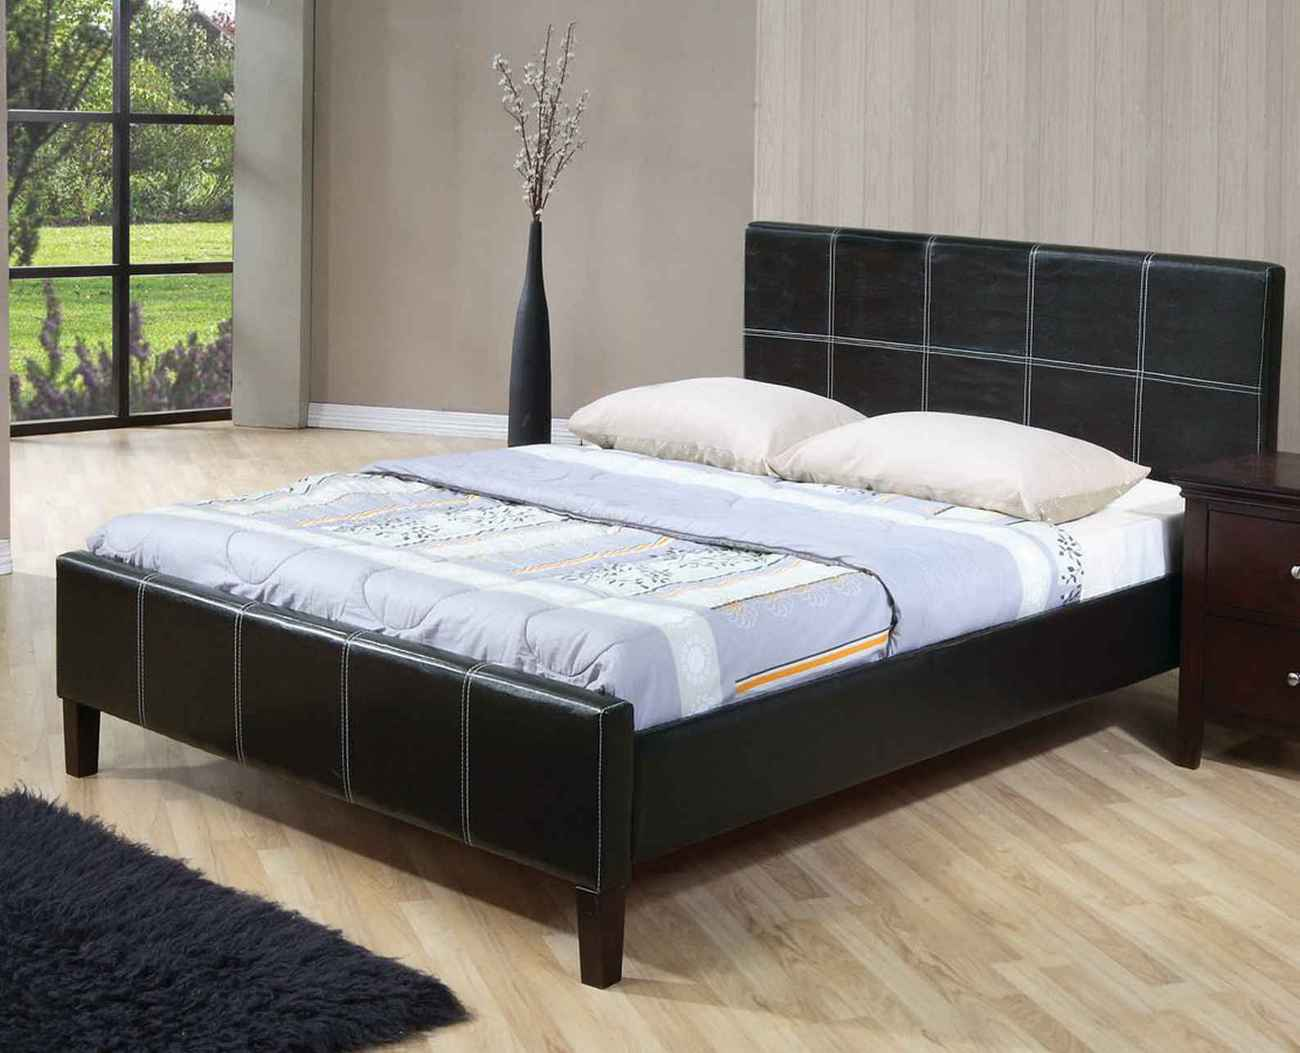 Affordable cheap black platform beds in New York